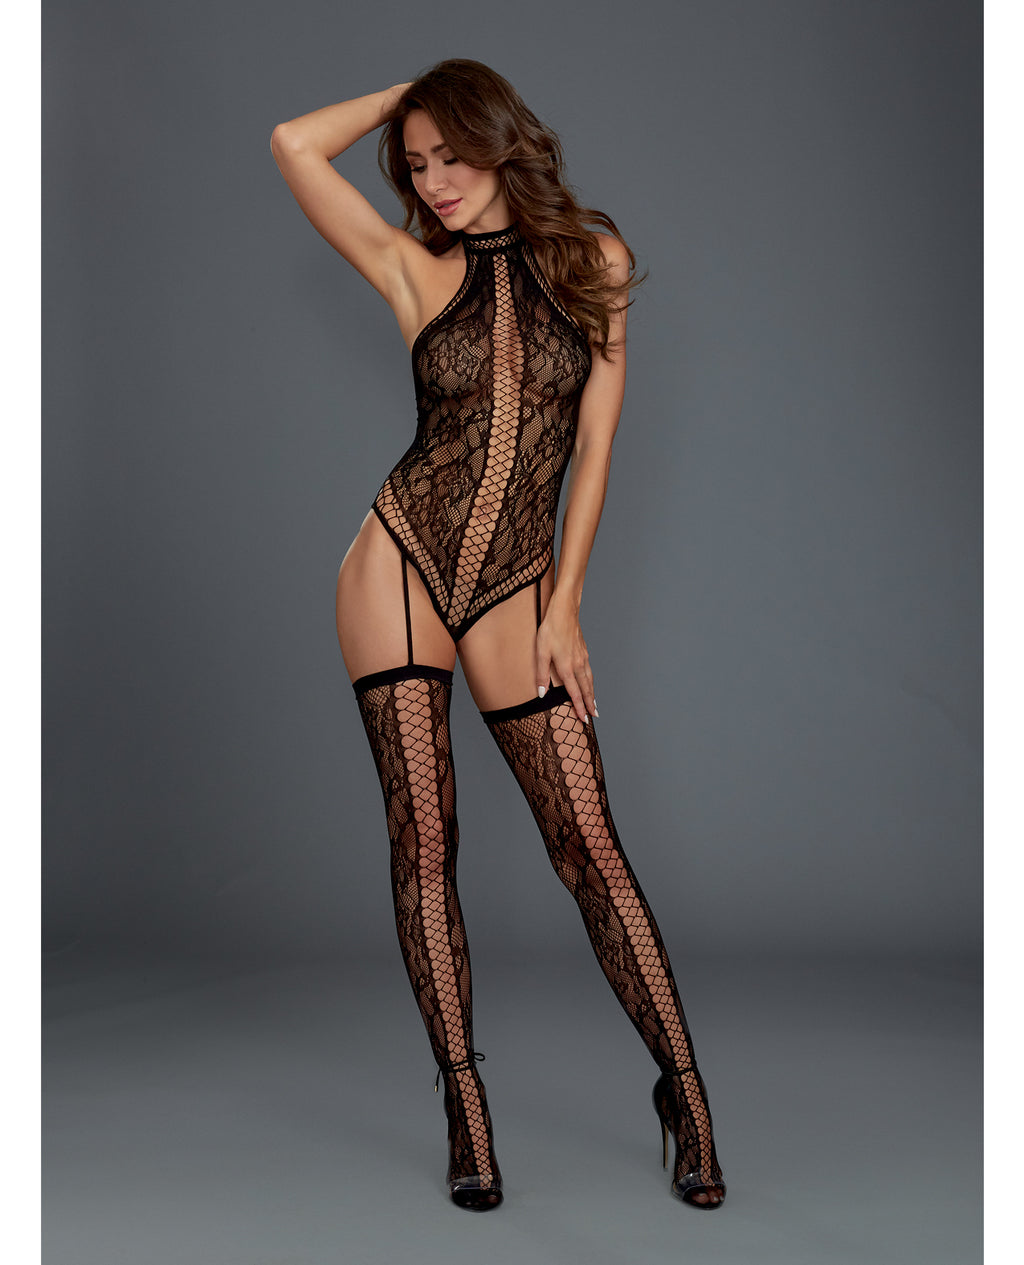 Lace Halter Neckline Teddy Bodystocking w/Attached Garters & Thigh Highs Black O/S